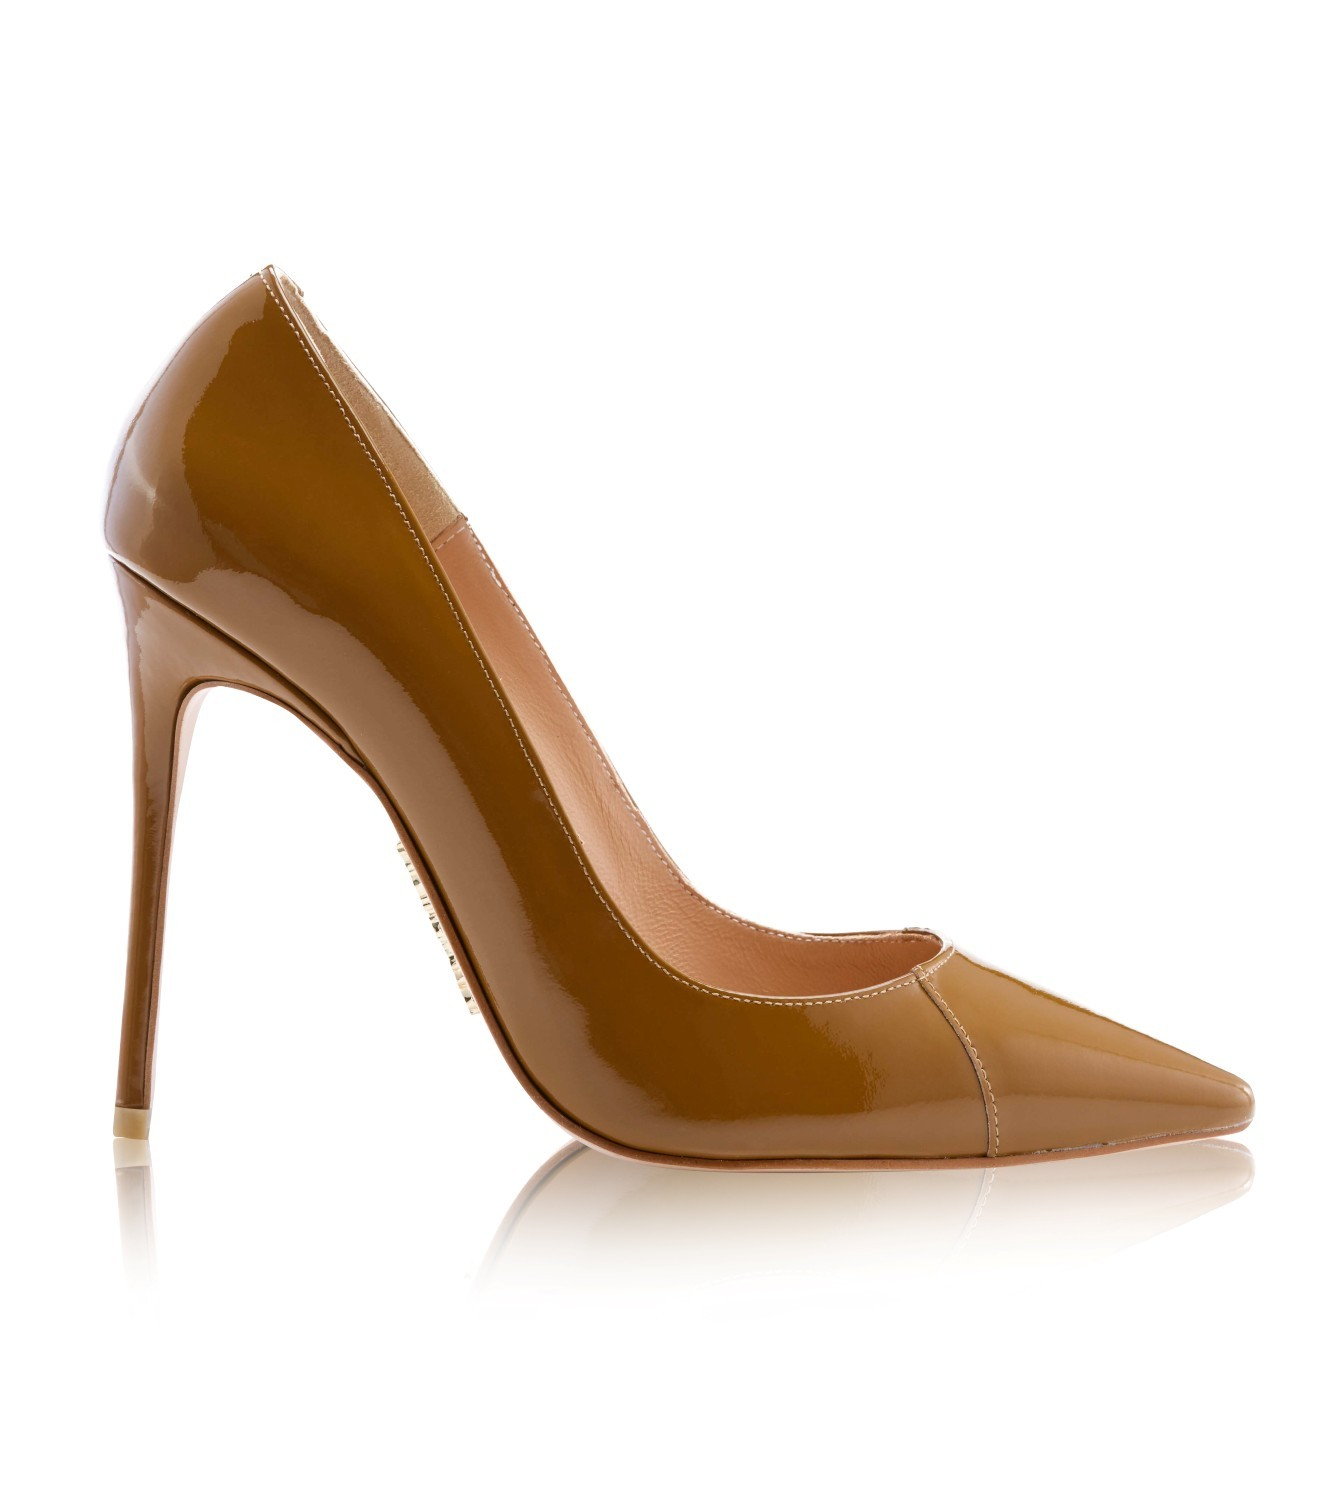 Shoes   PARIS  Tan Patent Leather Pointy Toe Heels 4